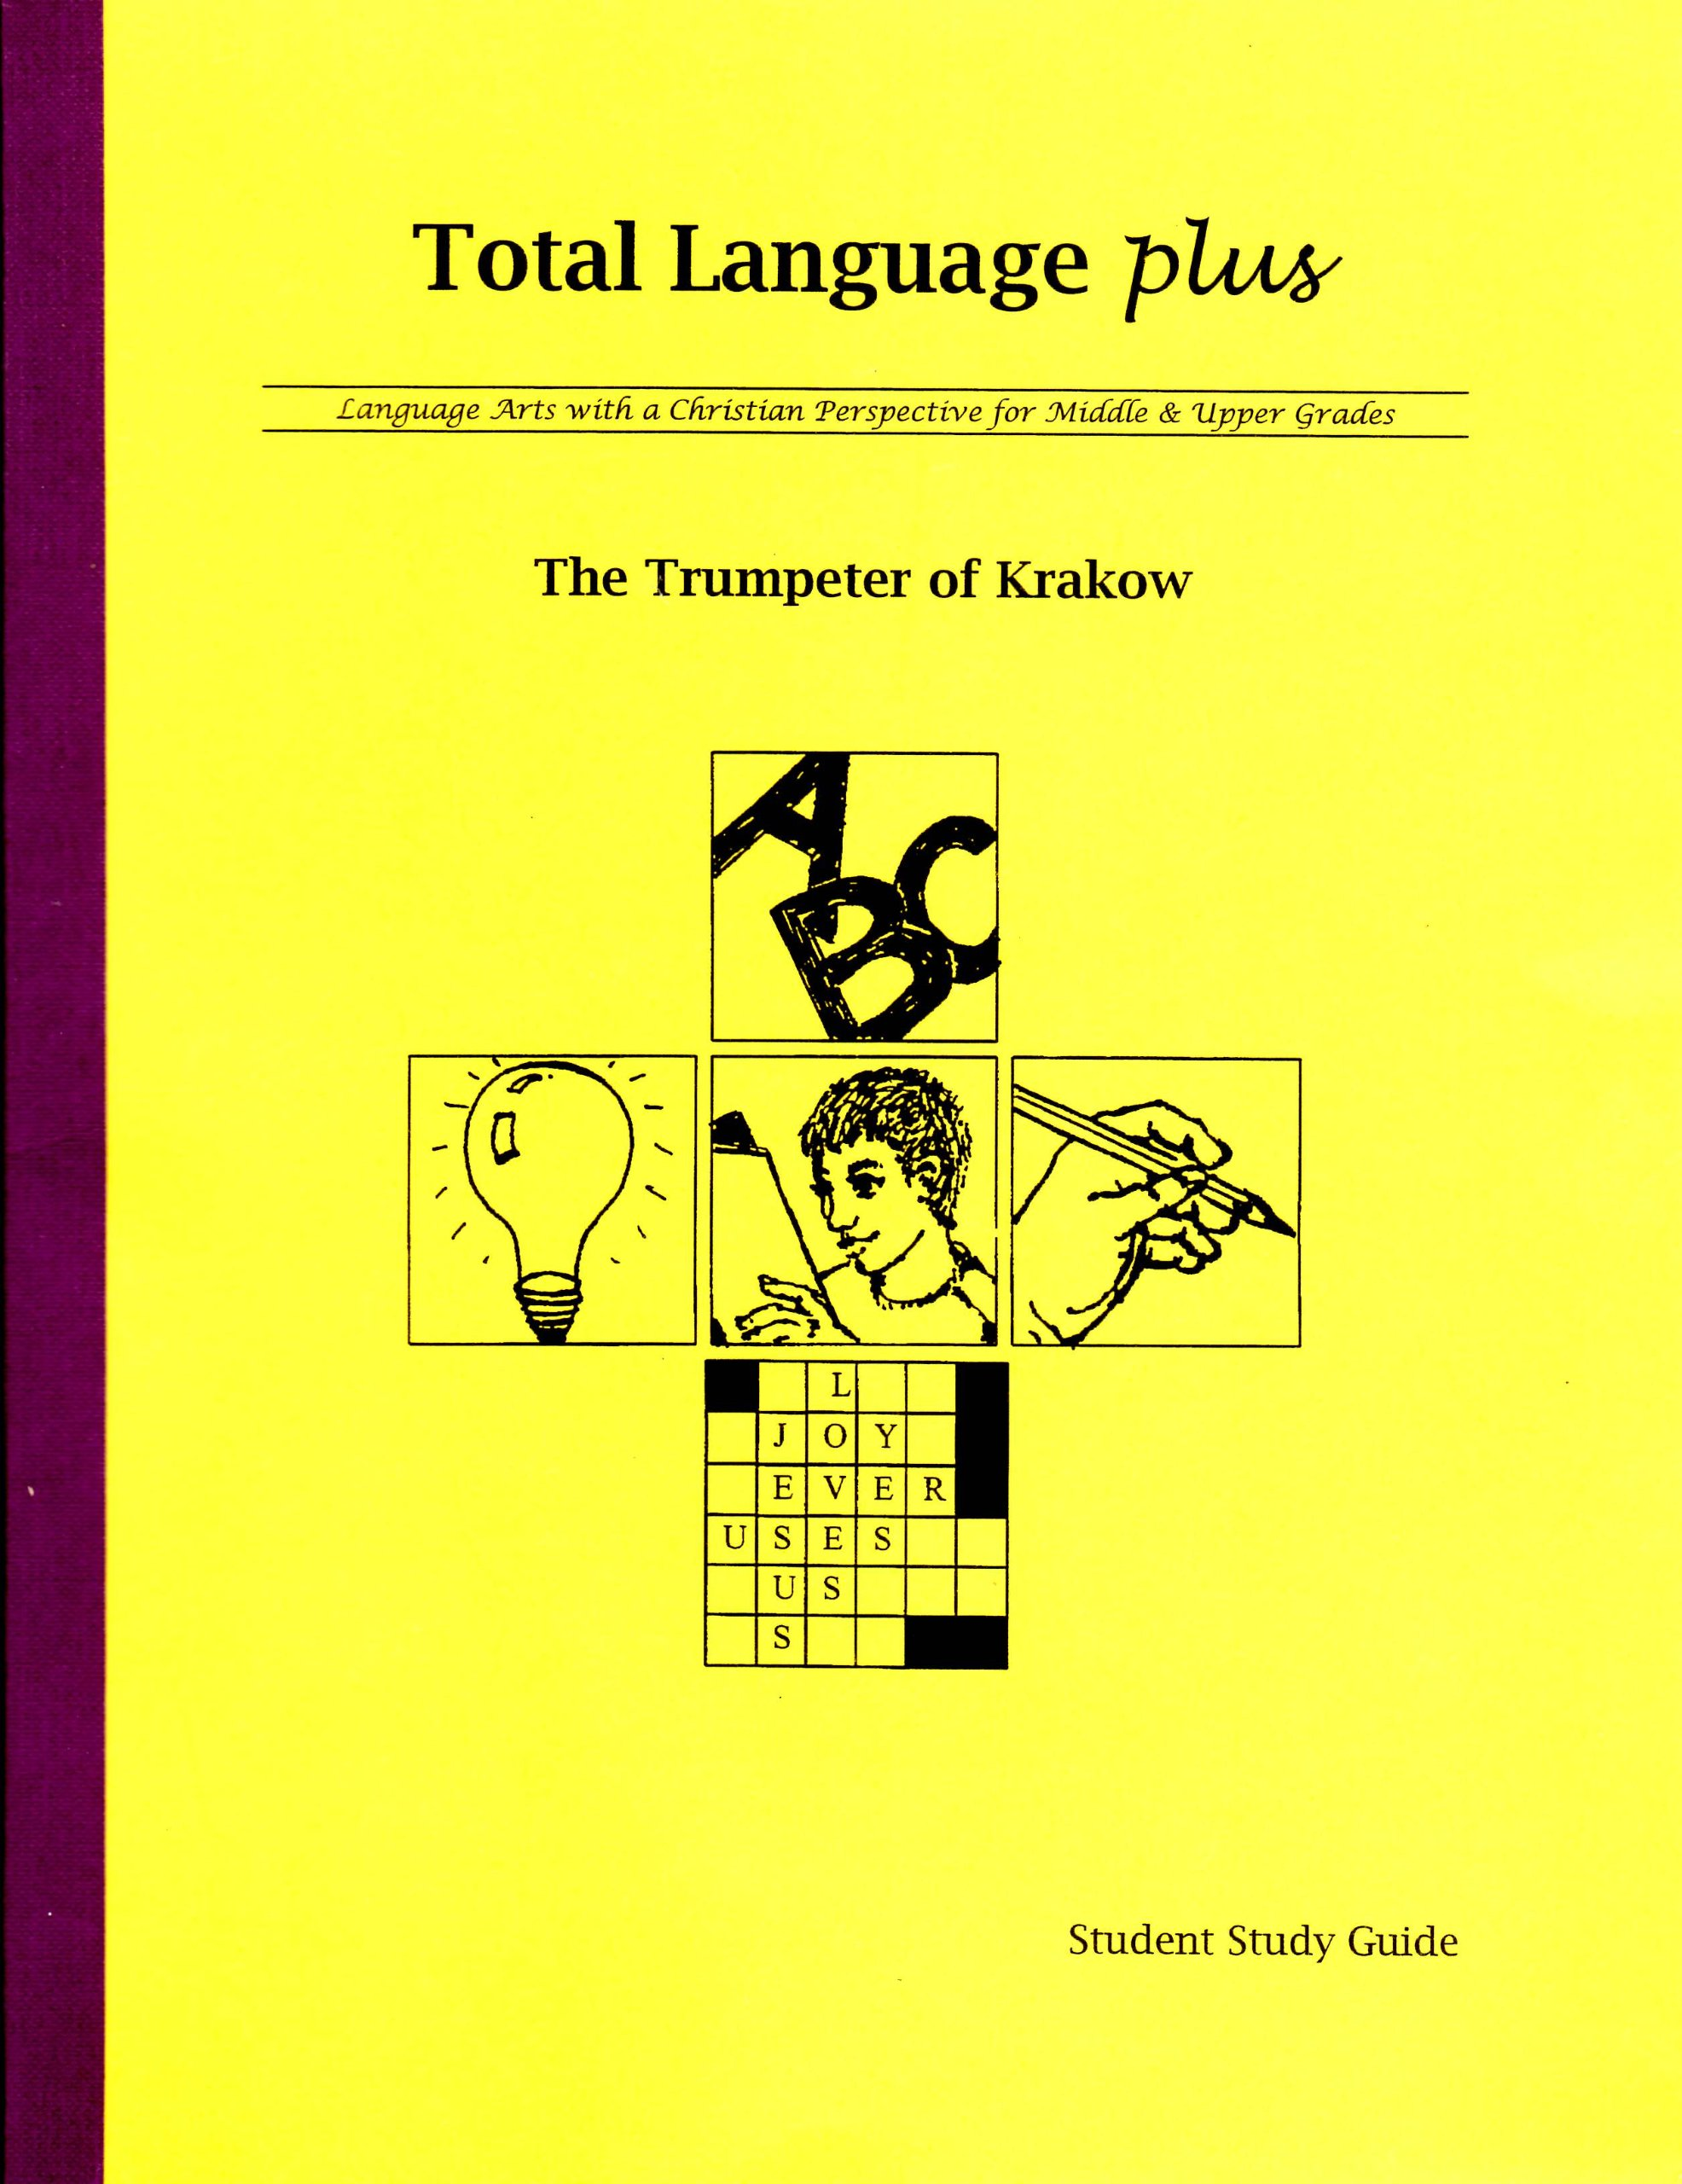 The trumpeter of krakow study guide — english off the pages.